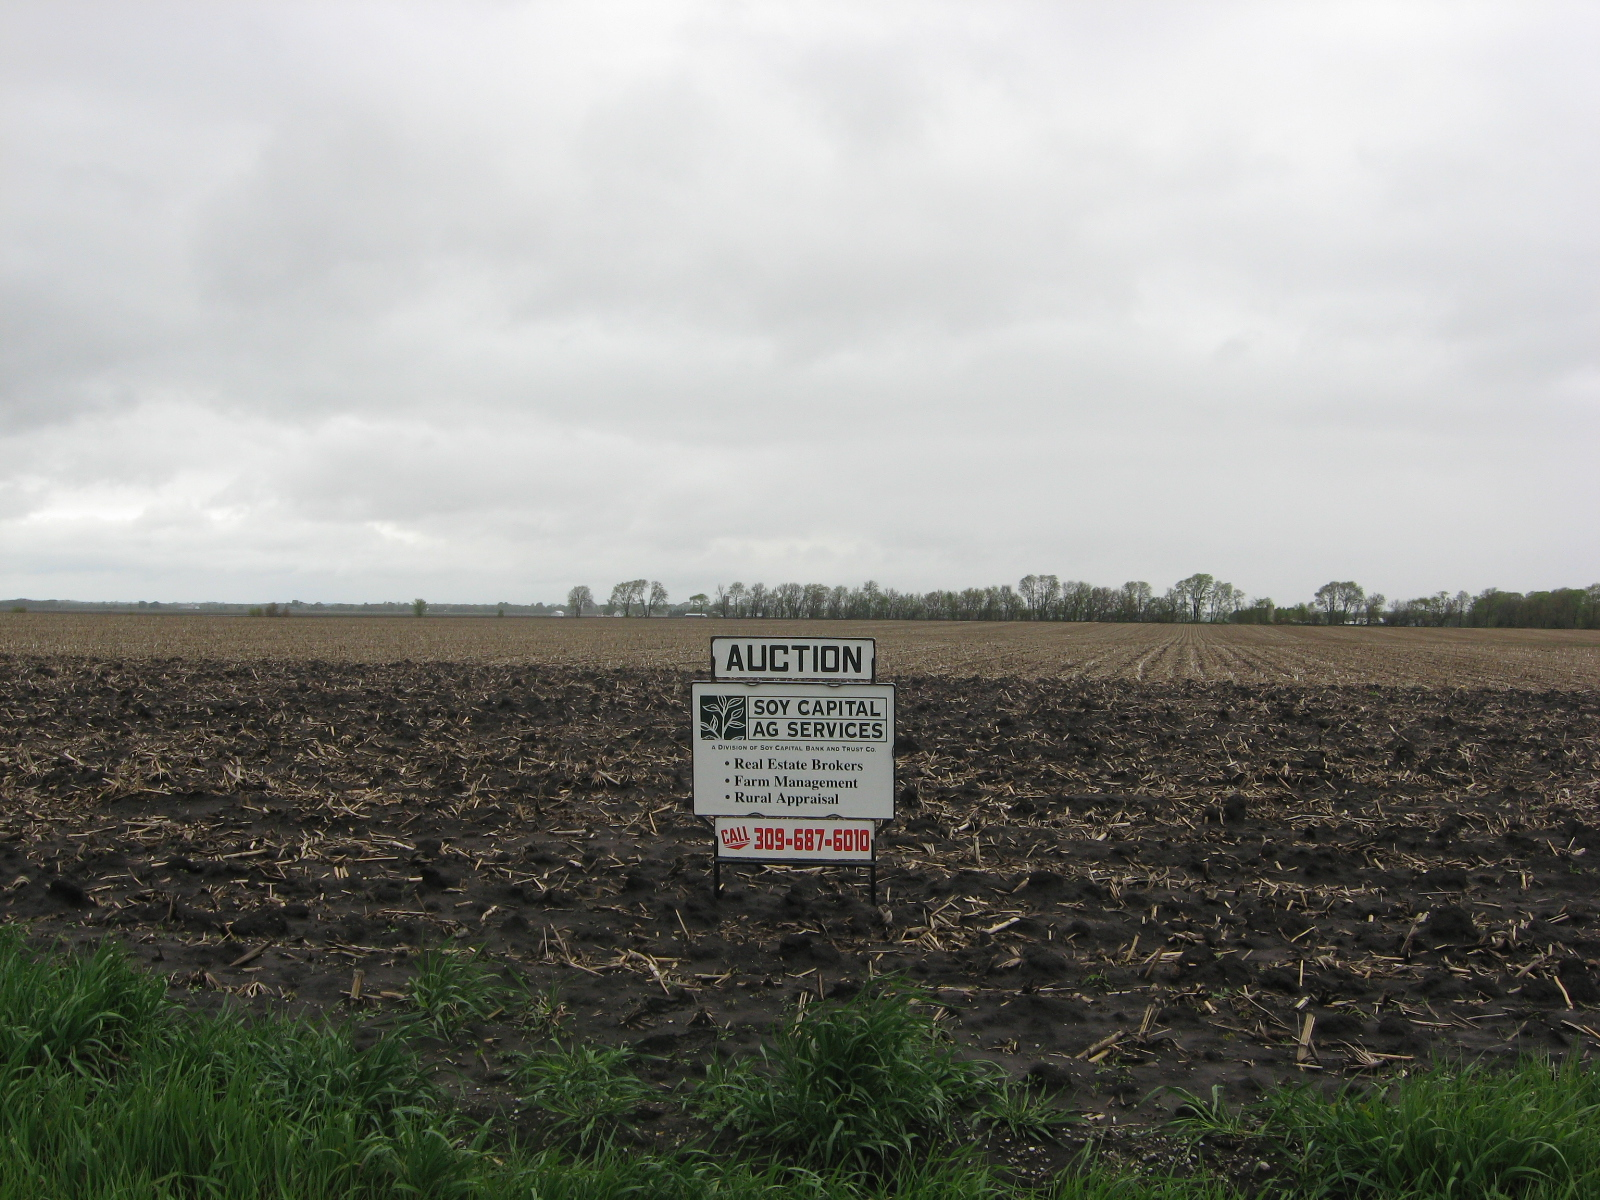 Picture of for sale sign on Alber-Mirando Farm